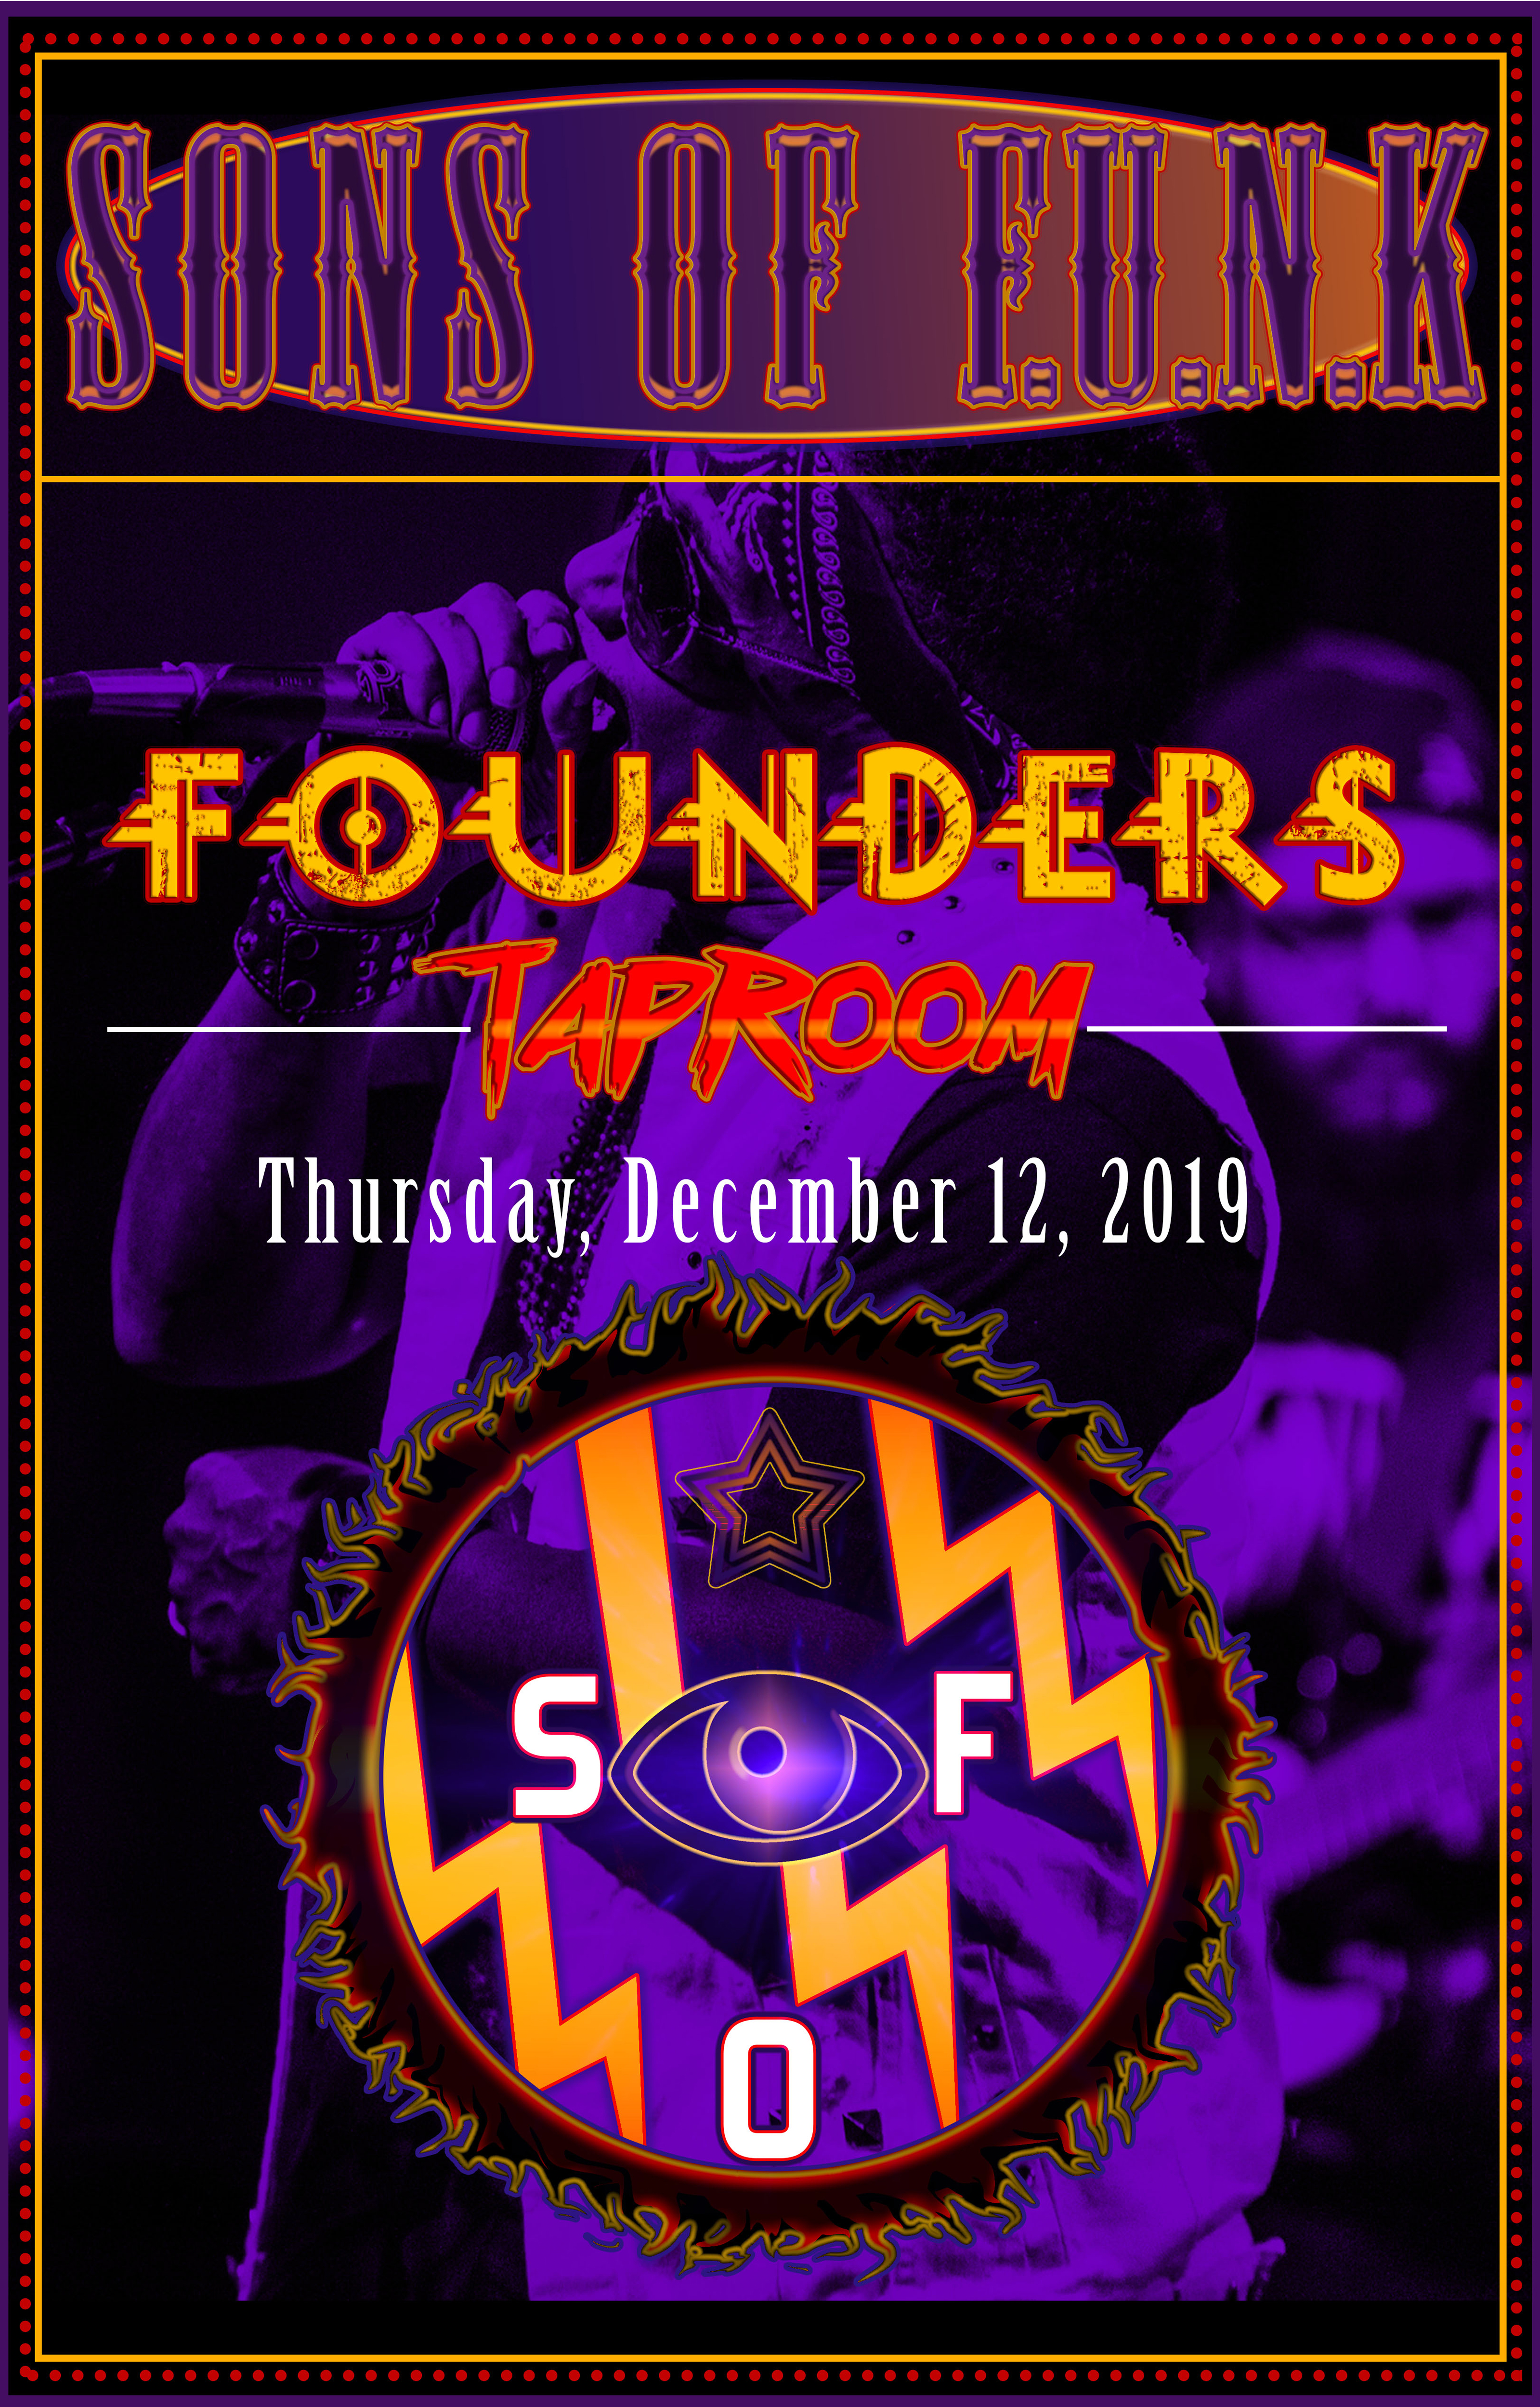 Sons of Funk event poster hosted by Founders Brewing Co.